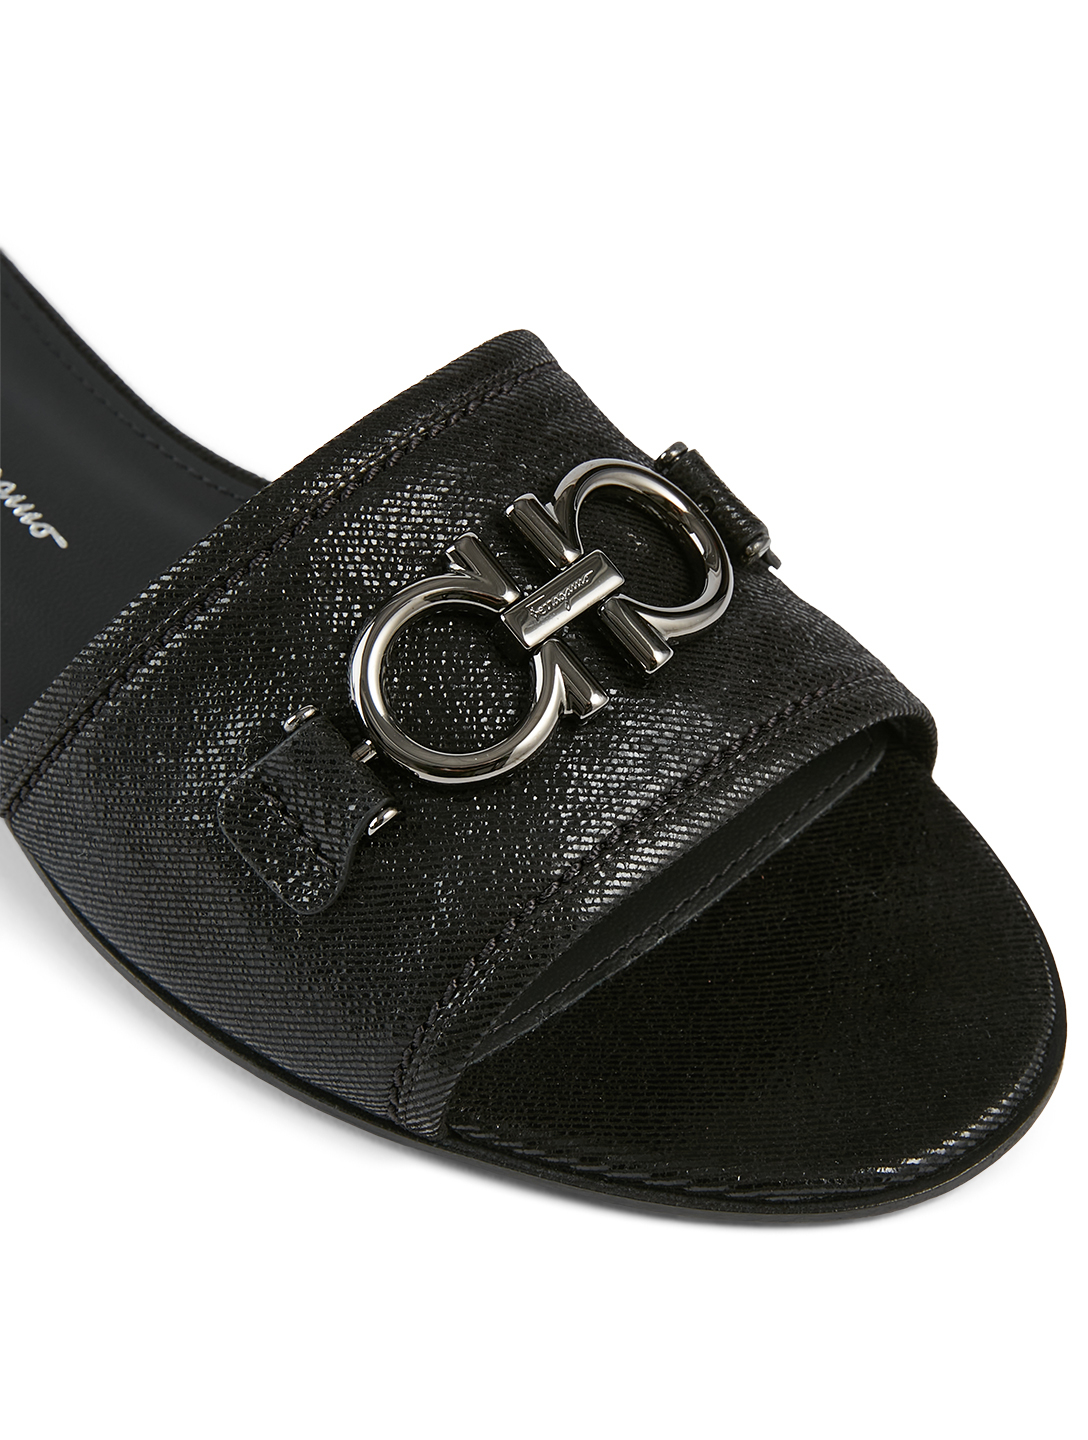 SALVATORE FERRAGAMO Rhodes Suede Slide Sandals Women's Black